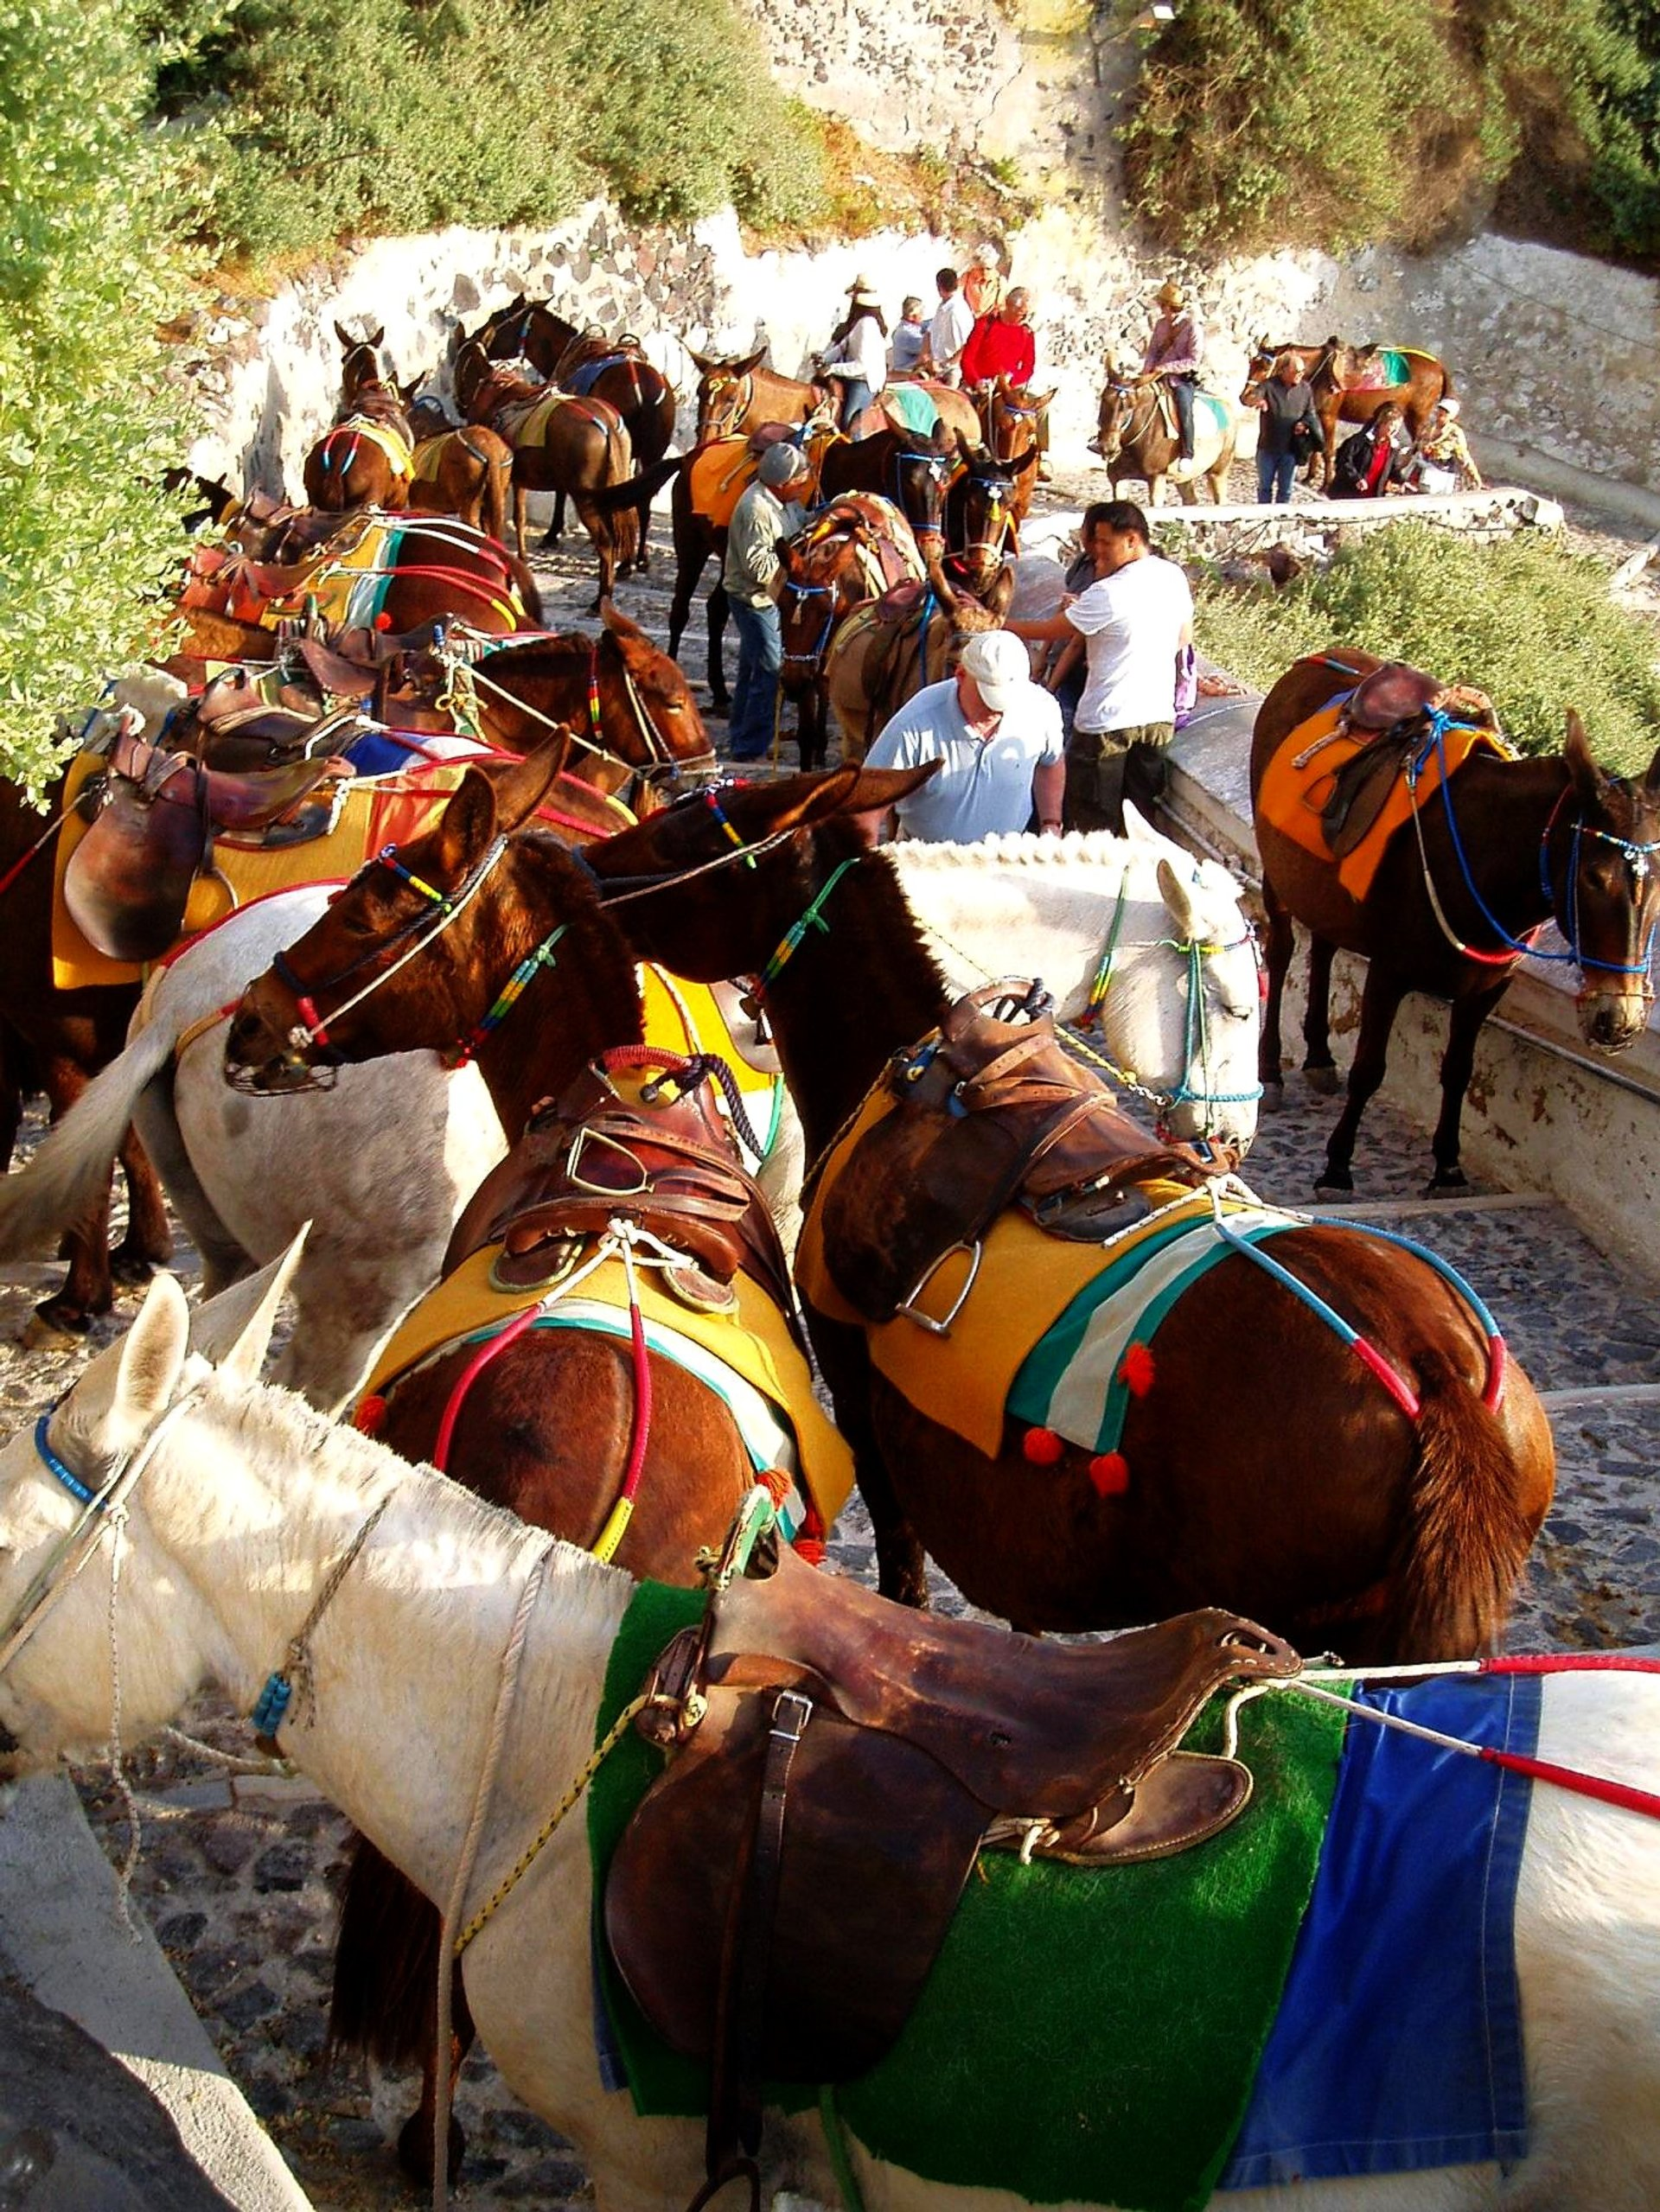 Donkey Ride in Santorini - Best Season 2020